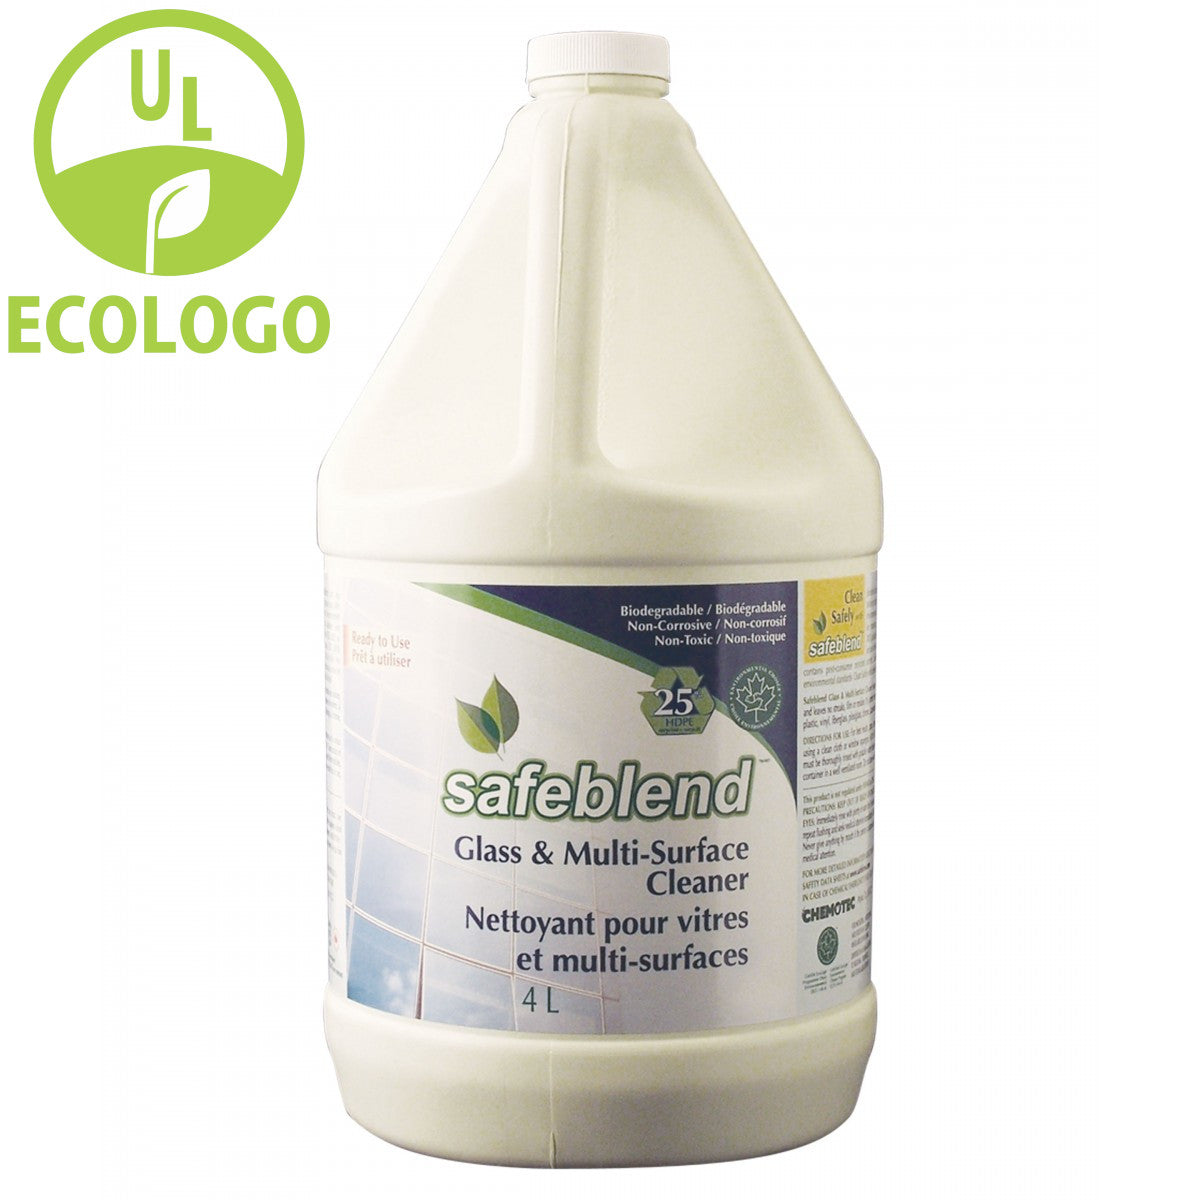 Safeblend Ready to Use EcoLogo Glass Cleaner - 4L - Super Vacs